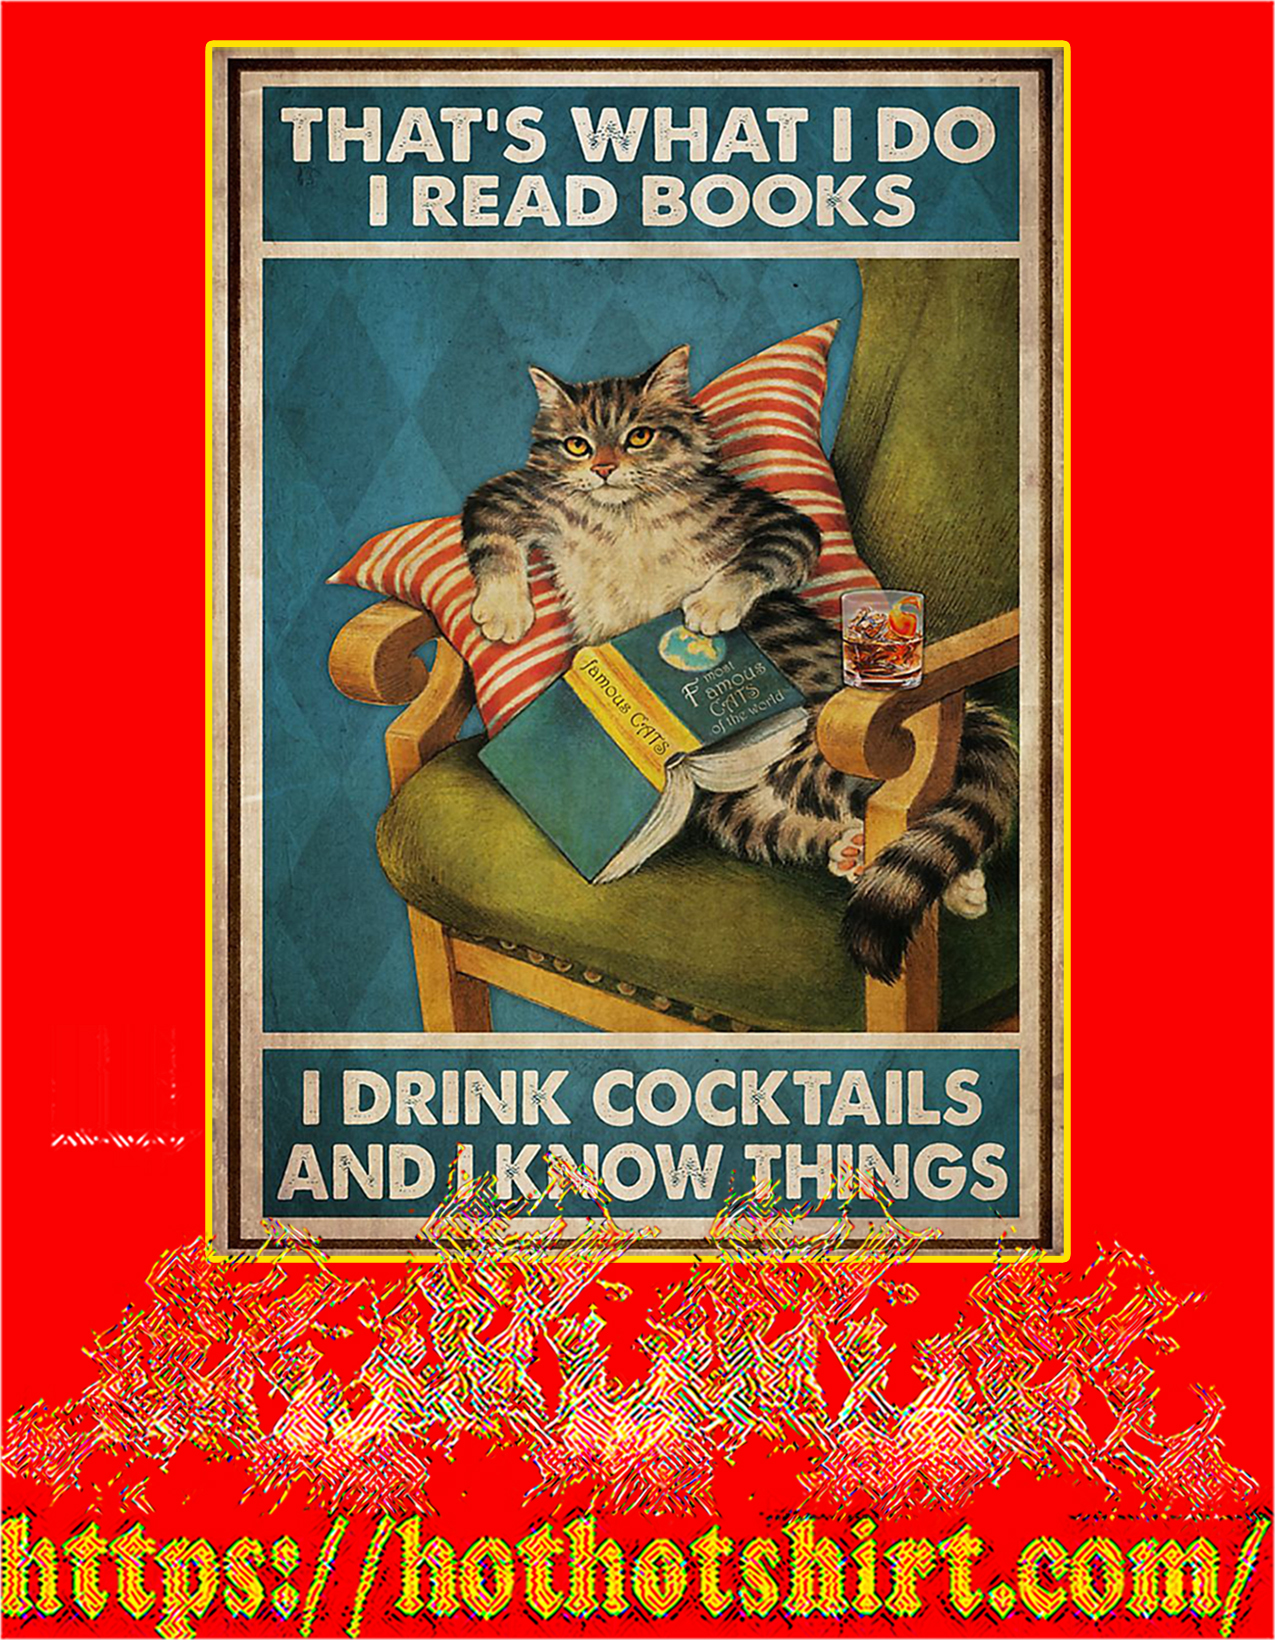 Cat That's what I do I read books I drink cocktails and I know things poster - A2